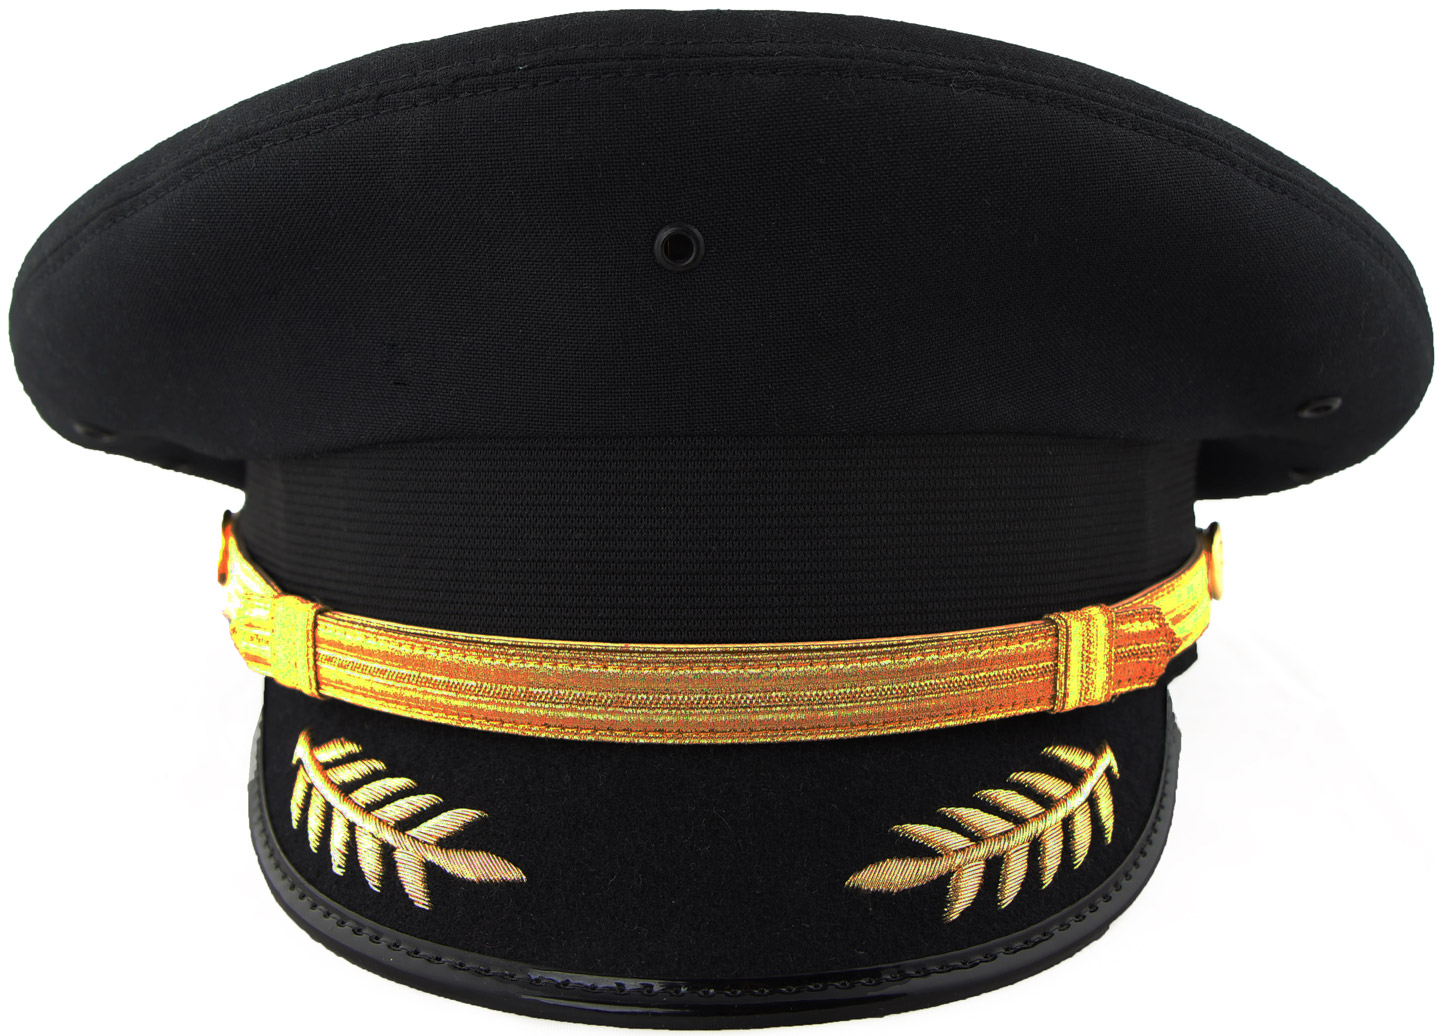 7464a7bc0d465 Airline Captain s Cap - Gold. 5 Customer Reviews. Tap to expand